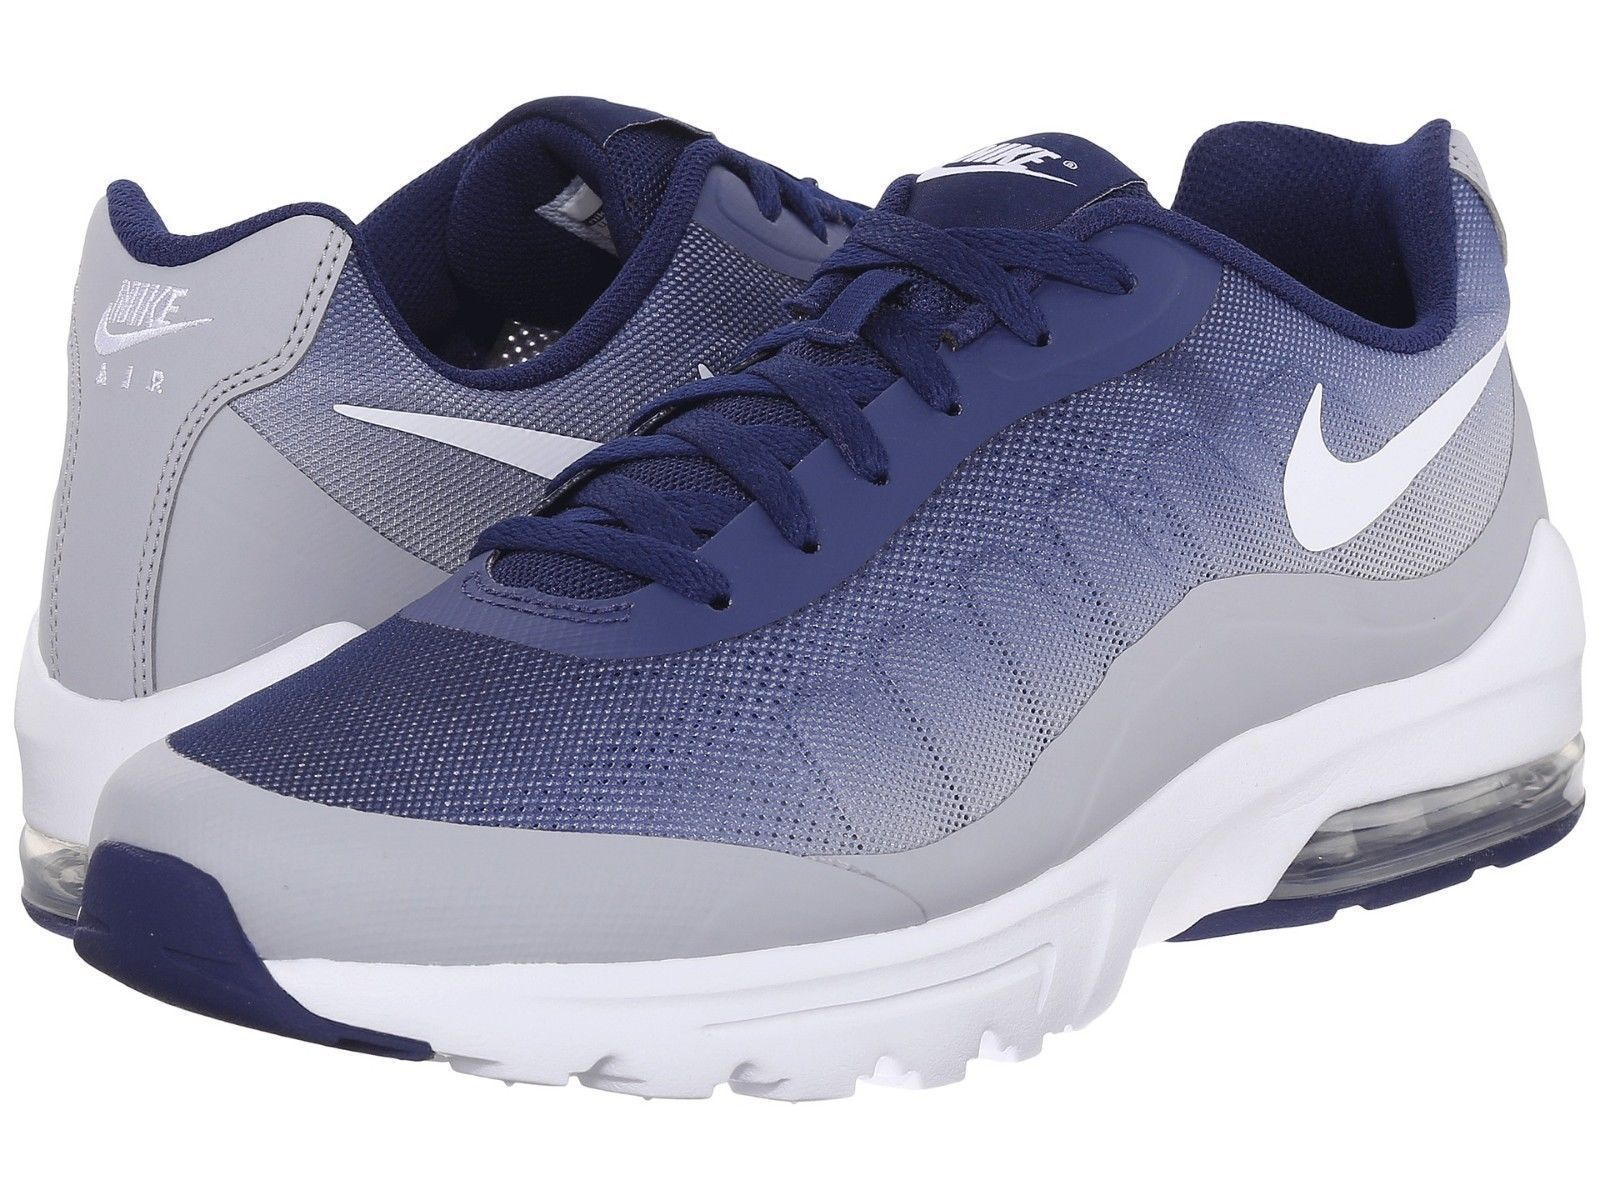 low cost ce9d7 9eaed NIKE AIR MAX INVIGOR PRINT NEW MEN S SIZE 12 BLUE GREY WHITE 749688 410